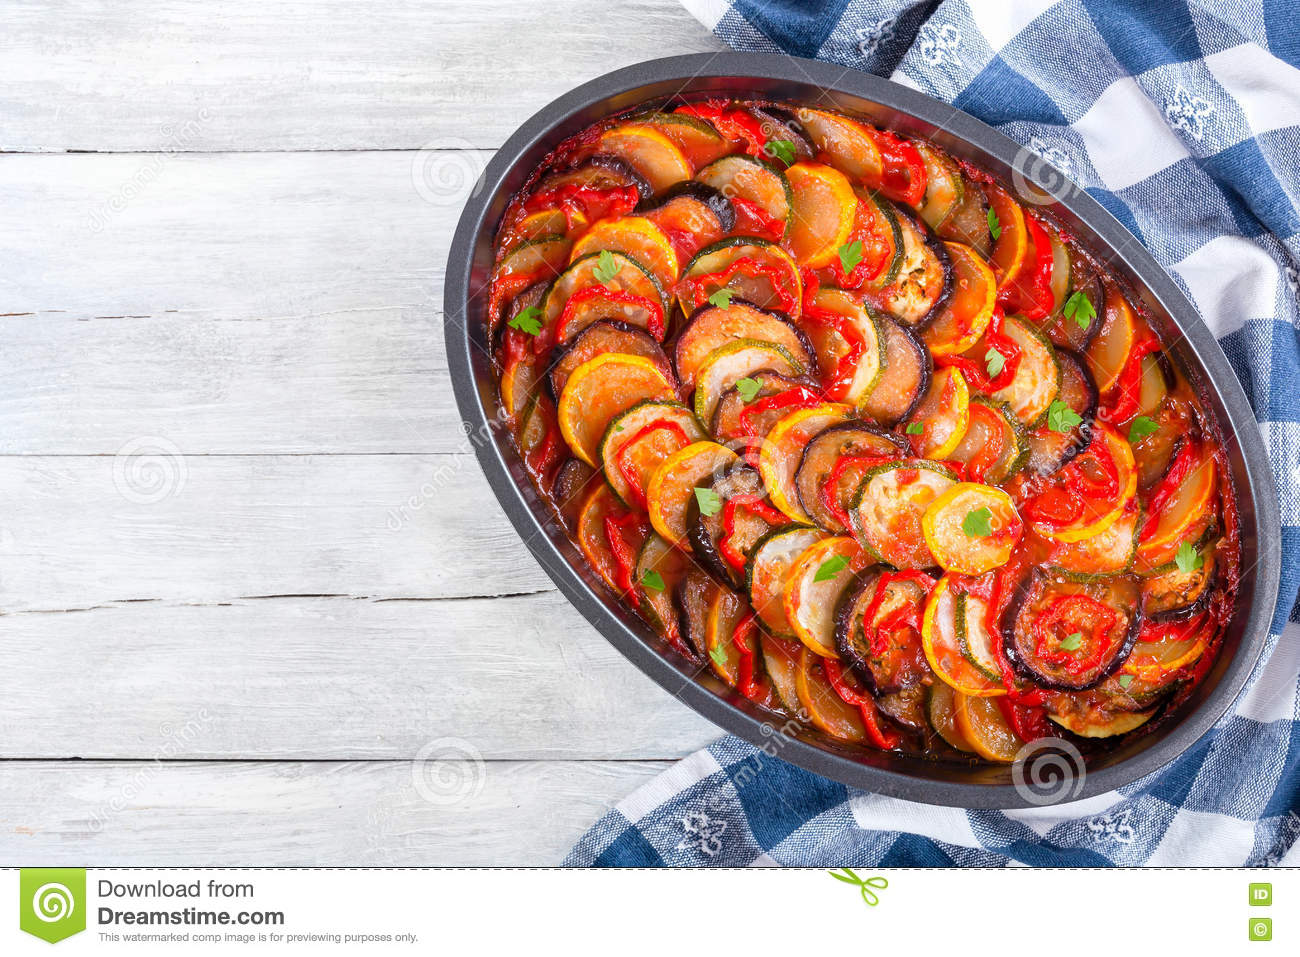 Traditional French vegetable casserole ratatouille, top view